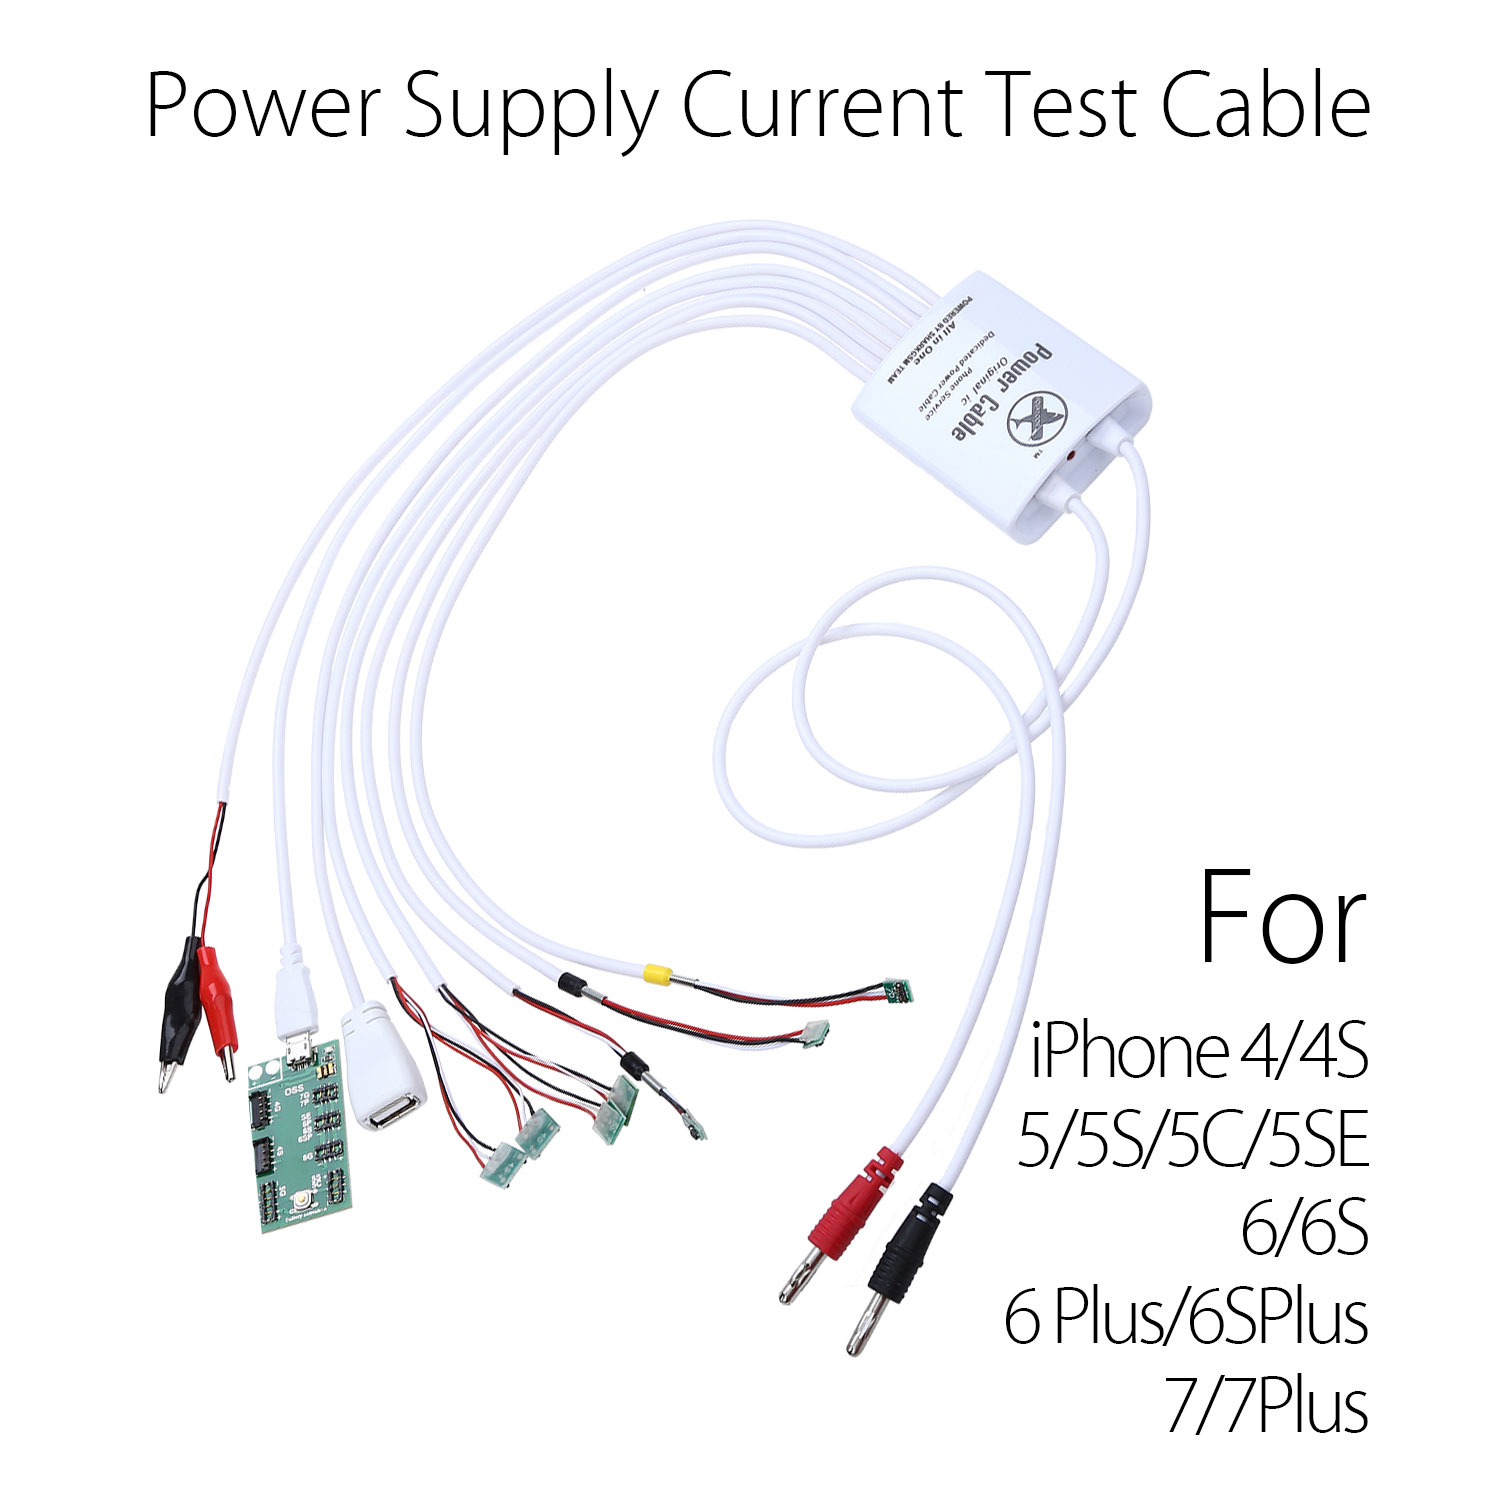 Iphone 4s Usb Cable Wiring Diagram Charging 4 Power Wire Center On